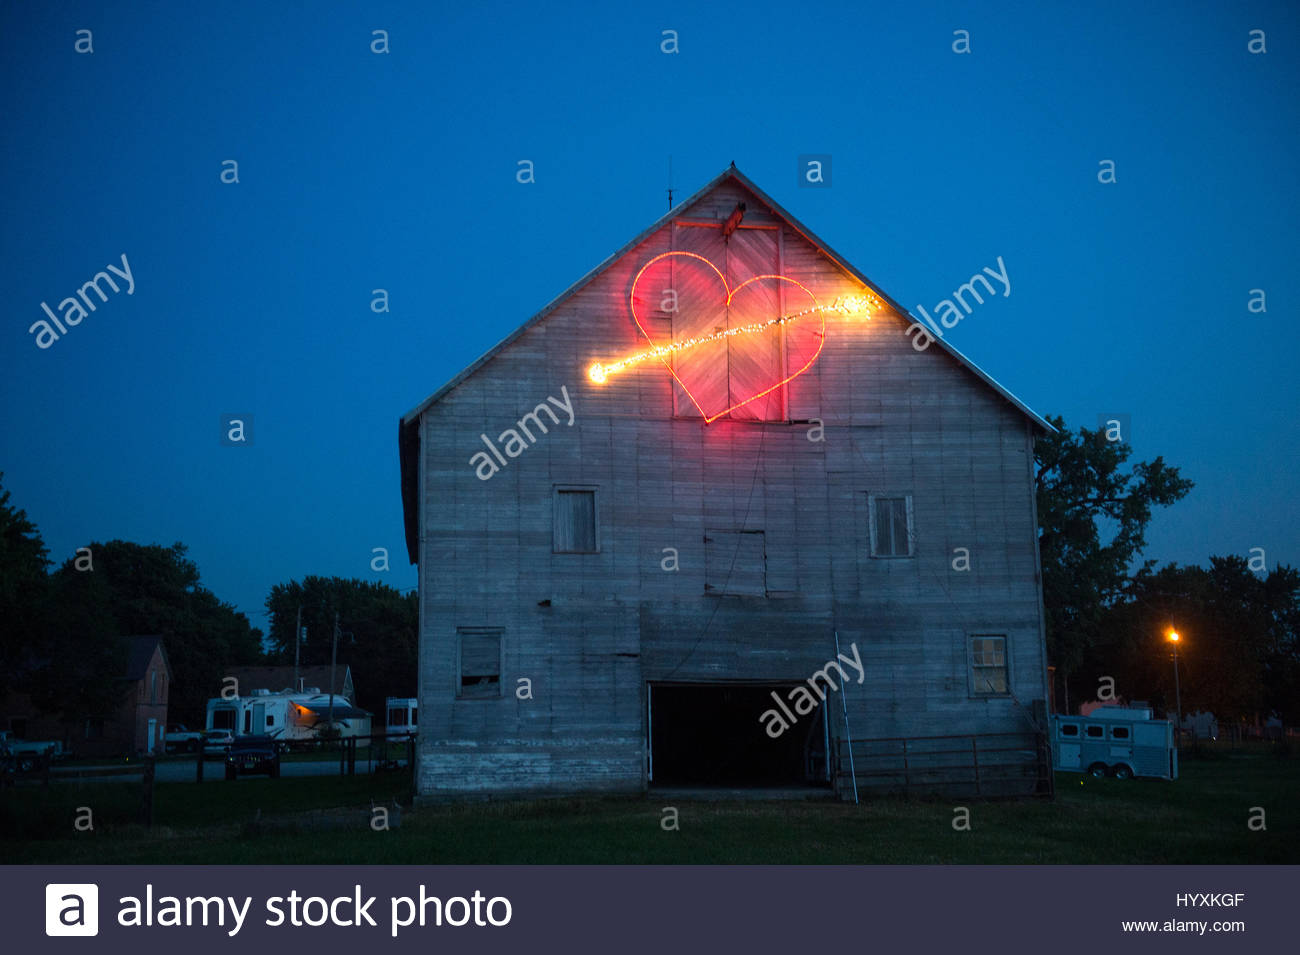 Heart shape made from light trail on the barn at a wedding reception. - Stock Image